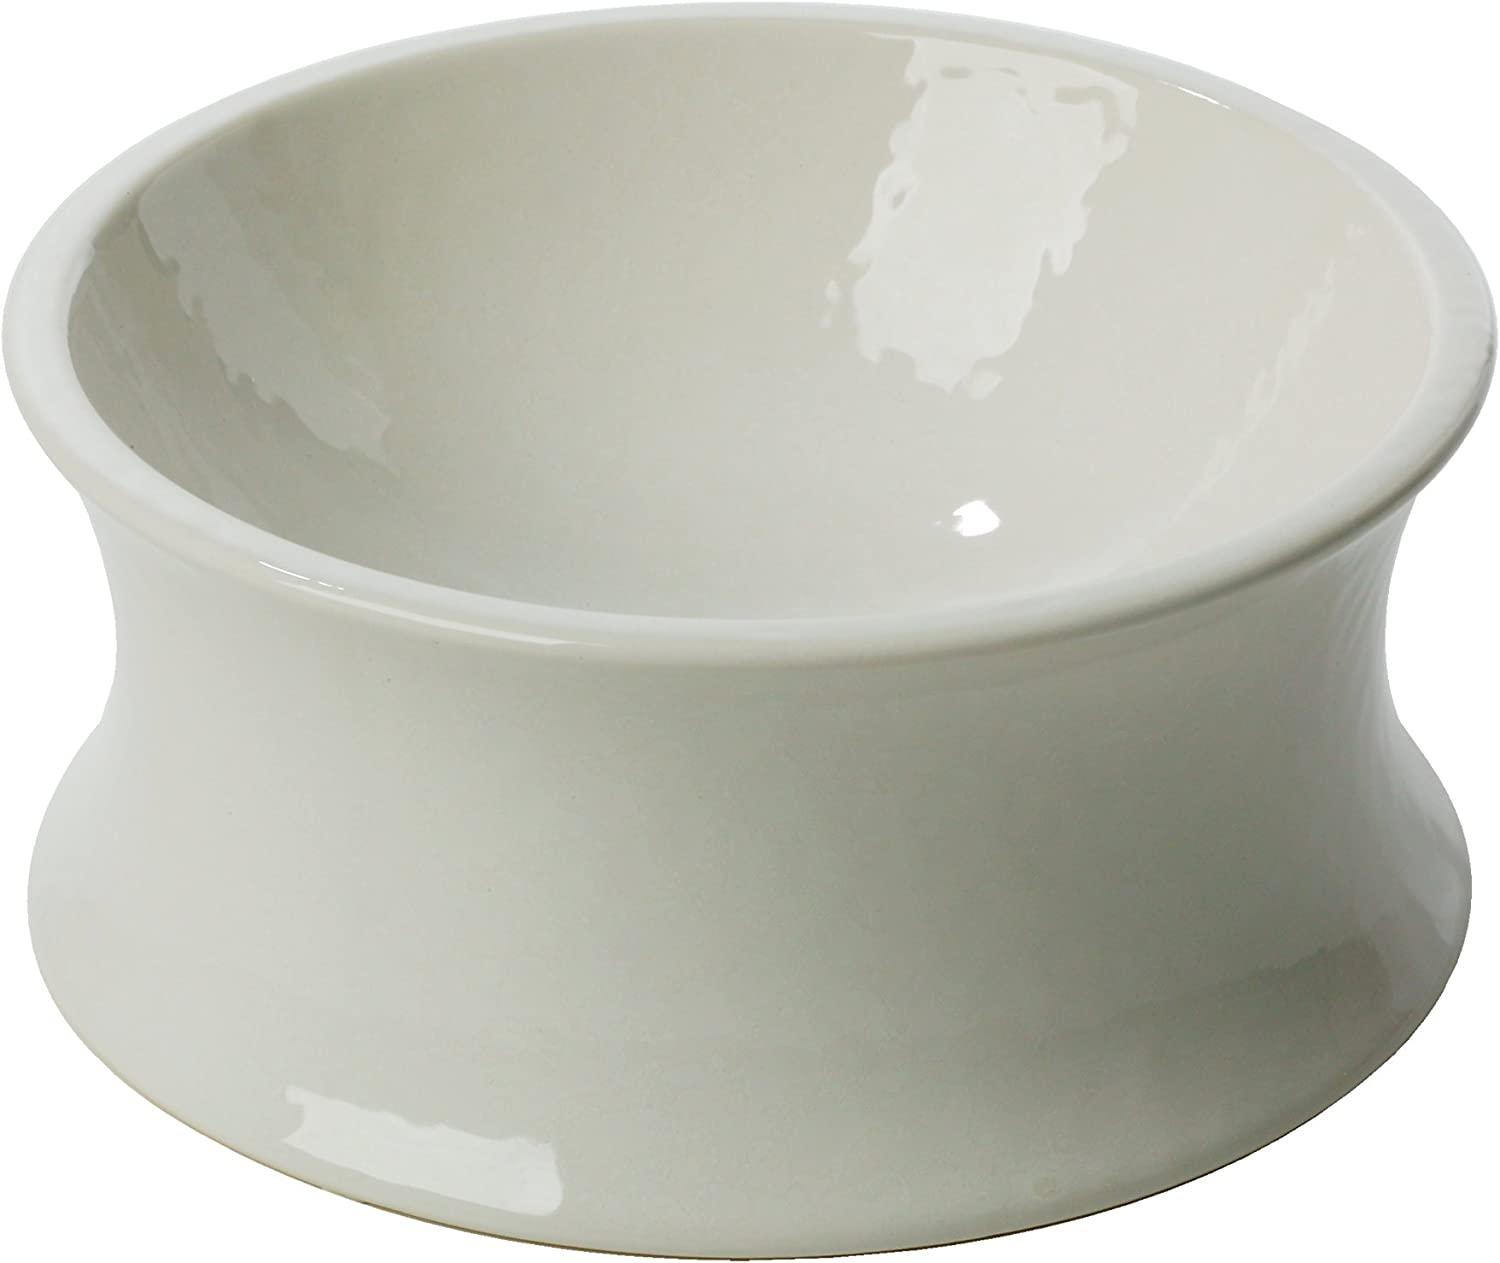 One for Pets The Kurve Raised Pet Bowl, Small, White